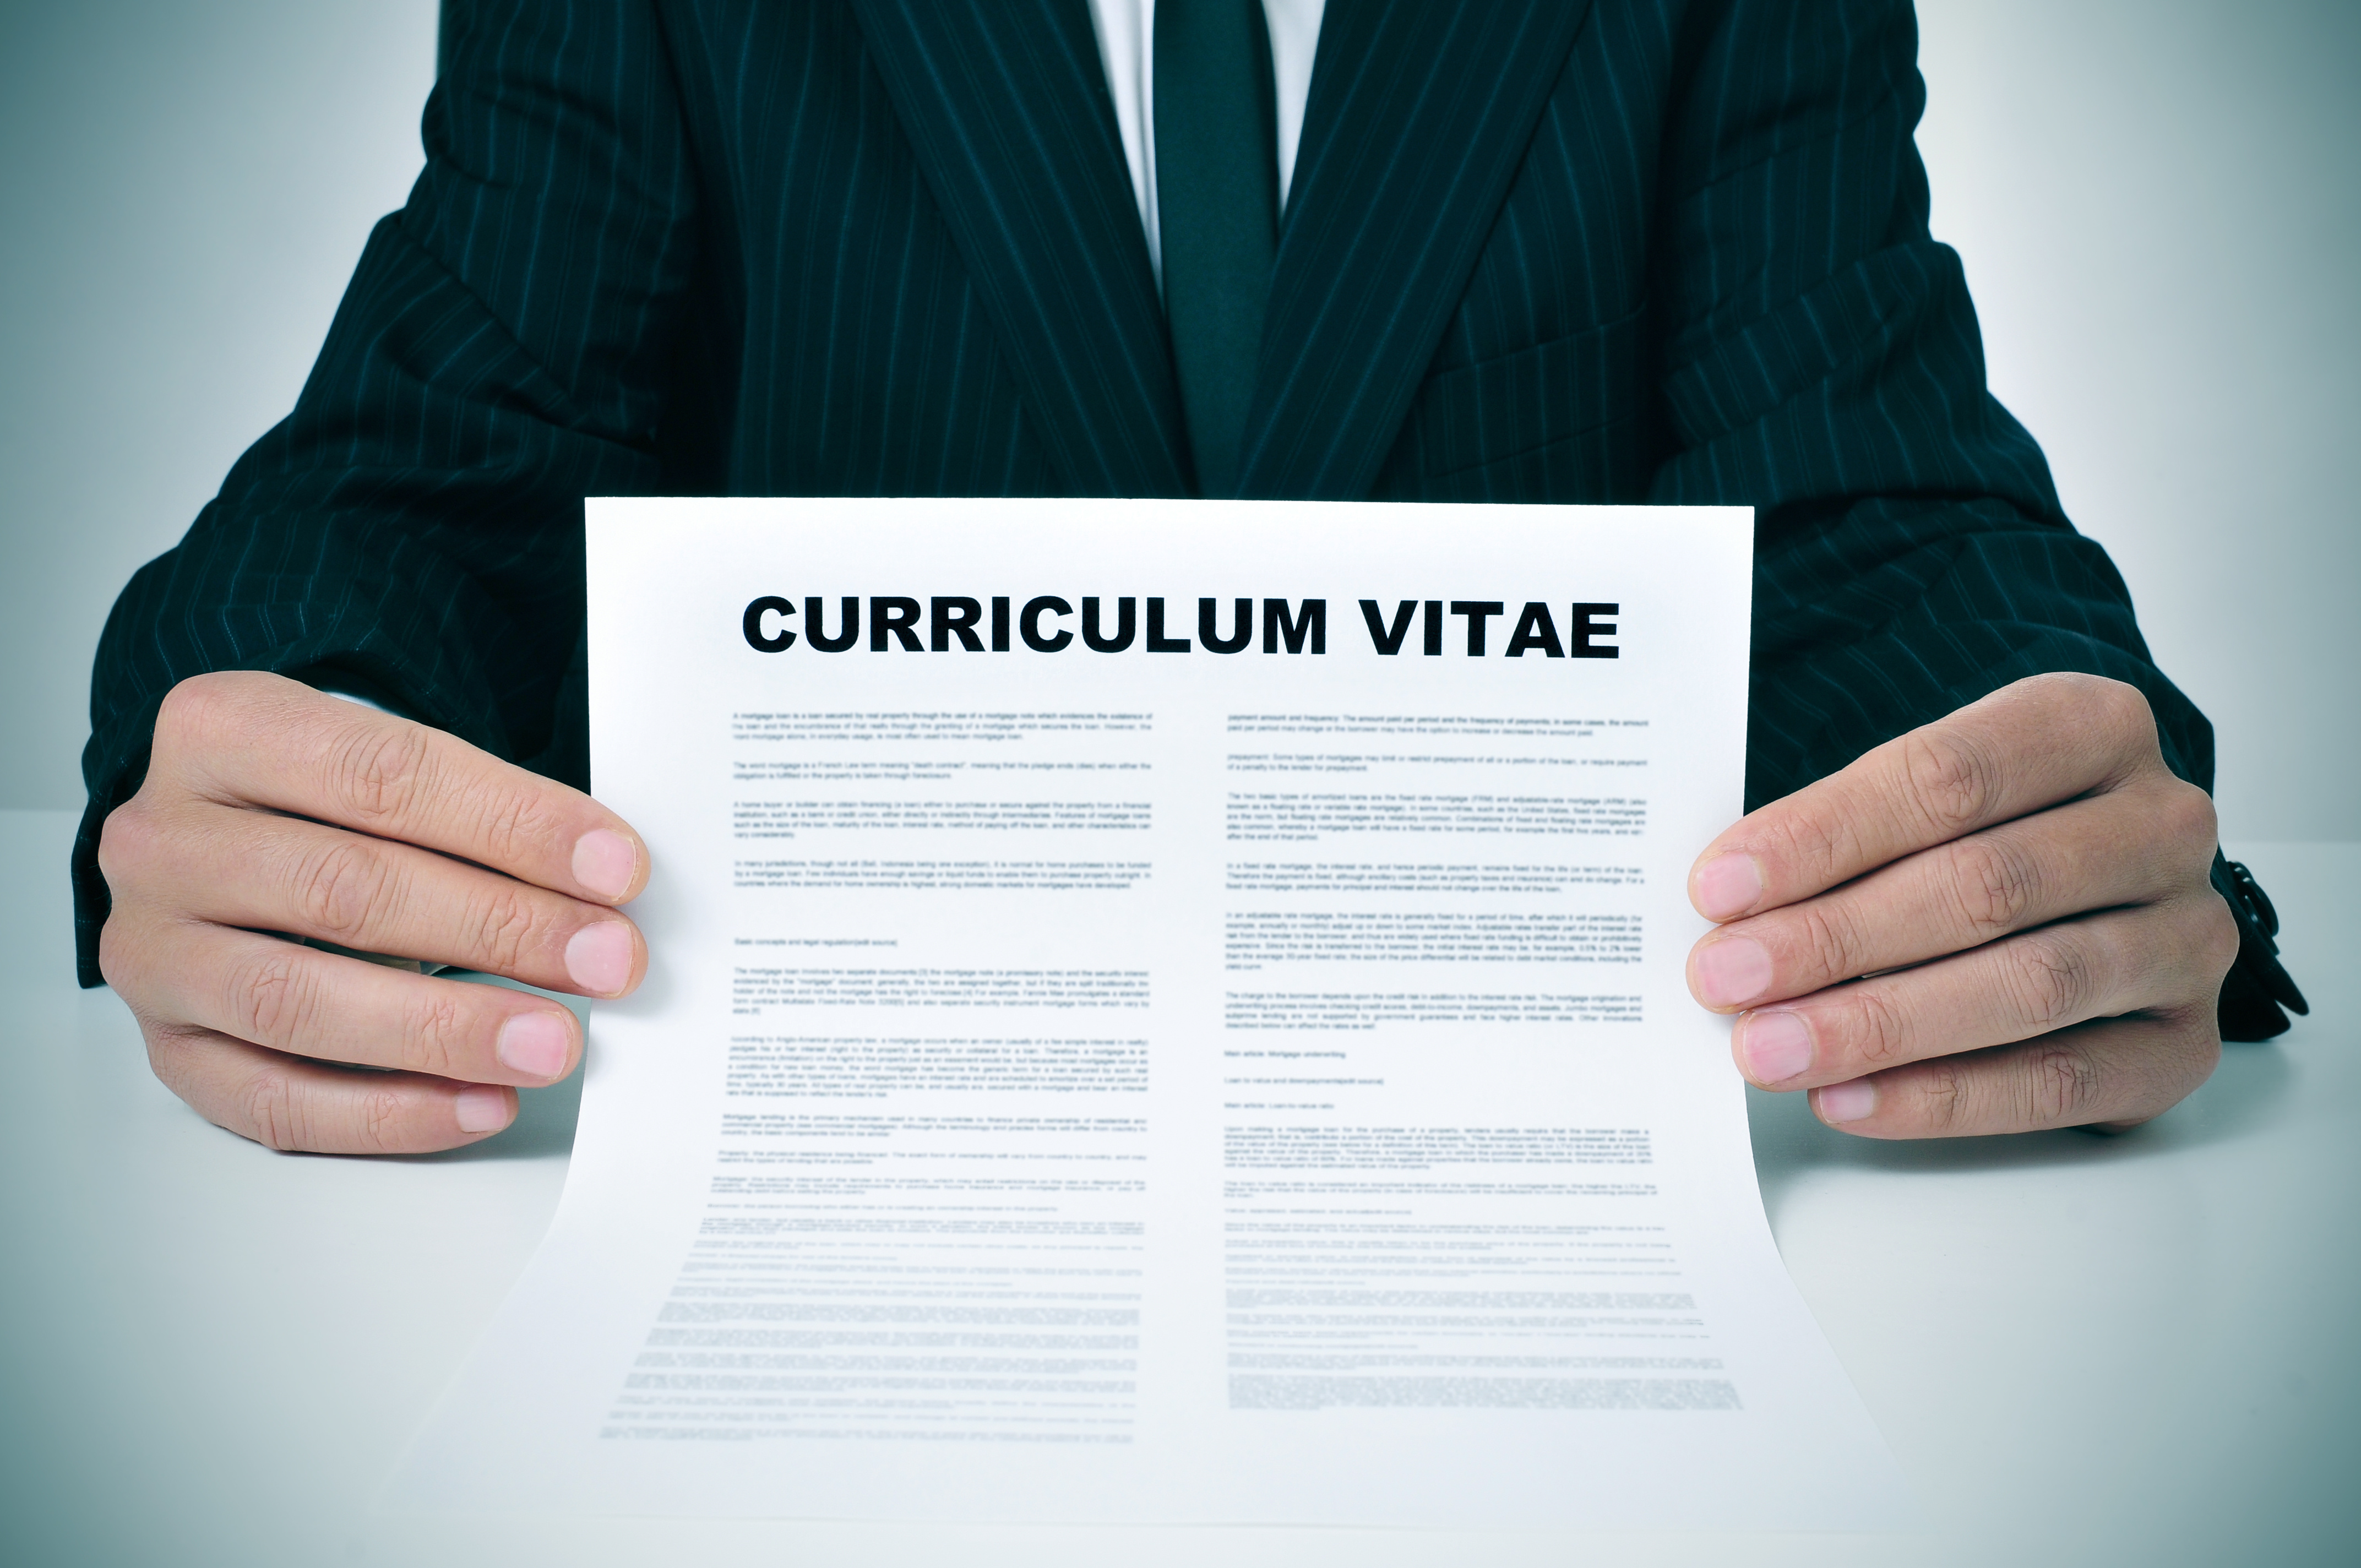 Curriculum Vitae And Cover Letters: An Alternative Approach